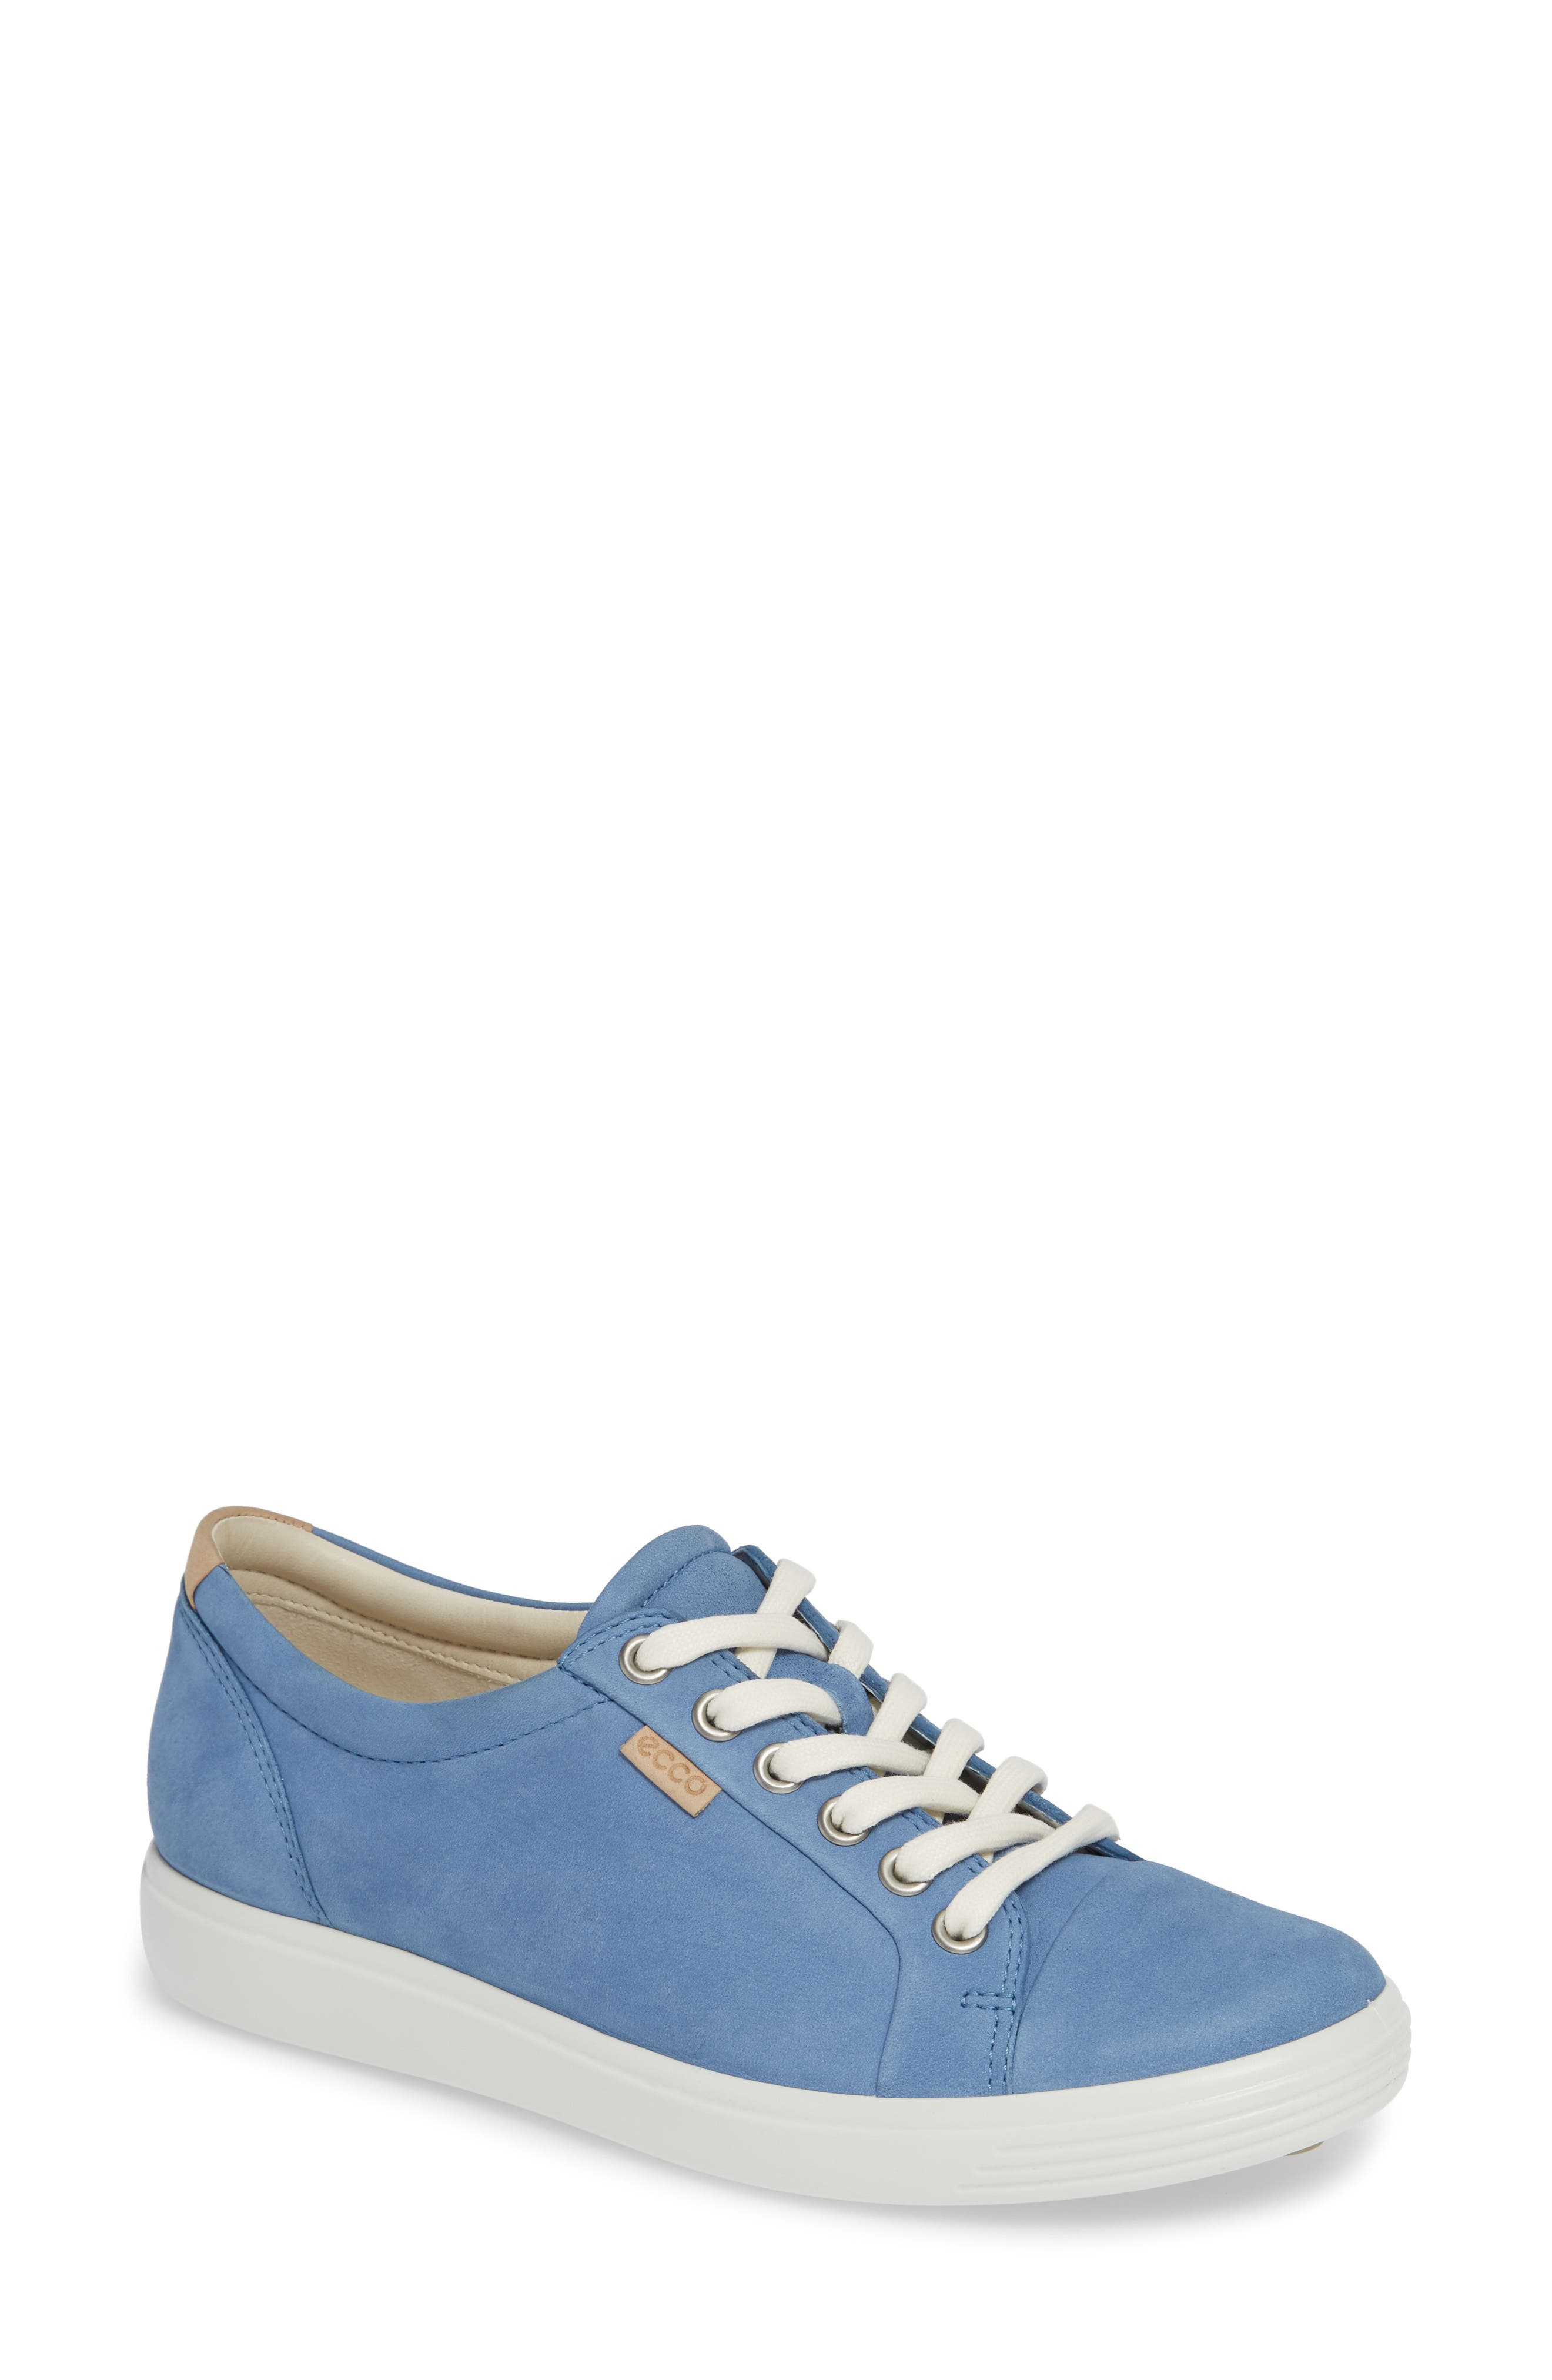 ,                             Soft 7 Sneaker,                             Main thumbnail 1, color,                             RETRO BLUE LEATHER